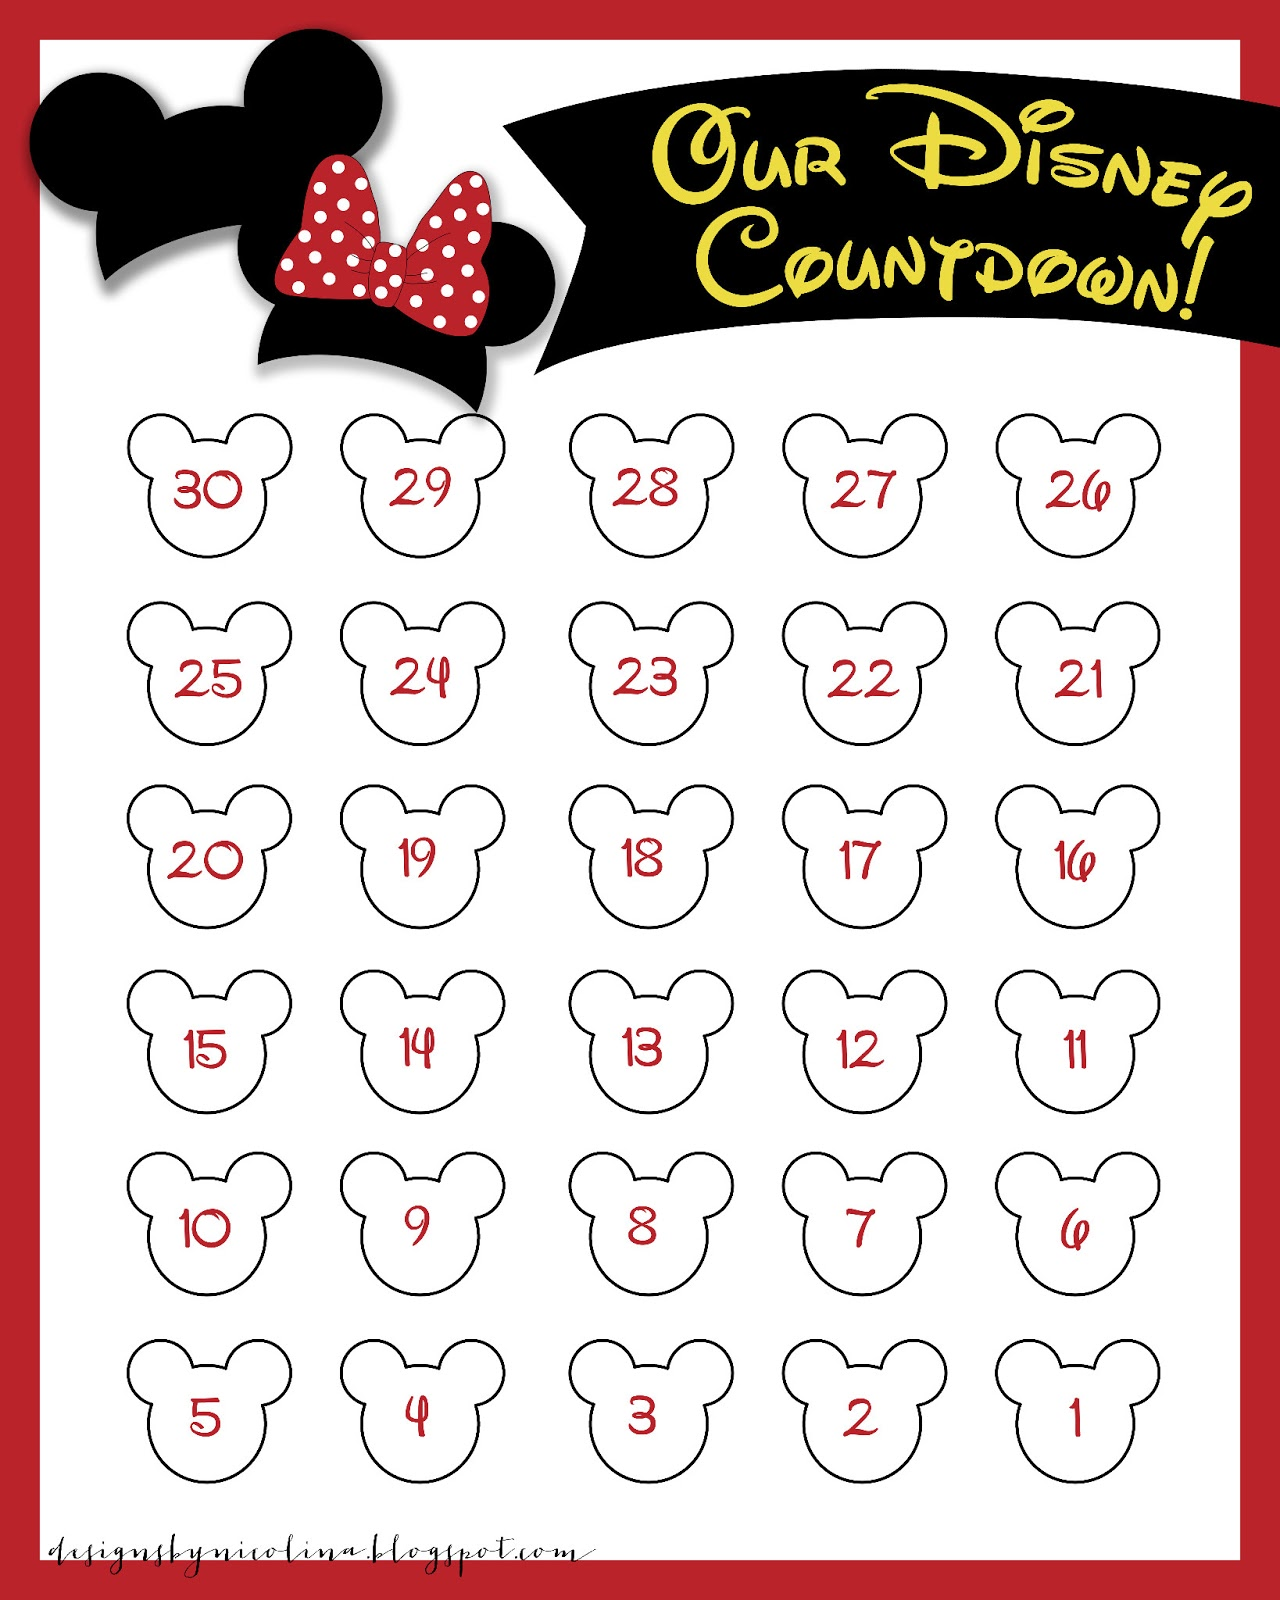 Hilaire image pertaining to countdown printable